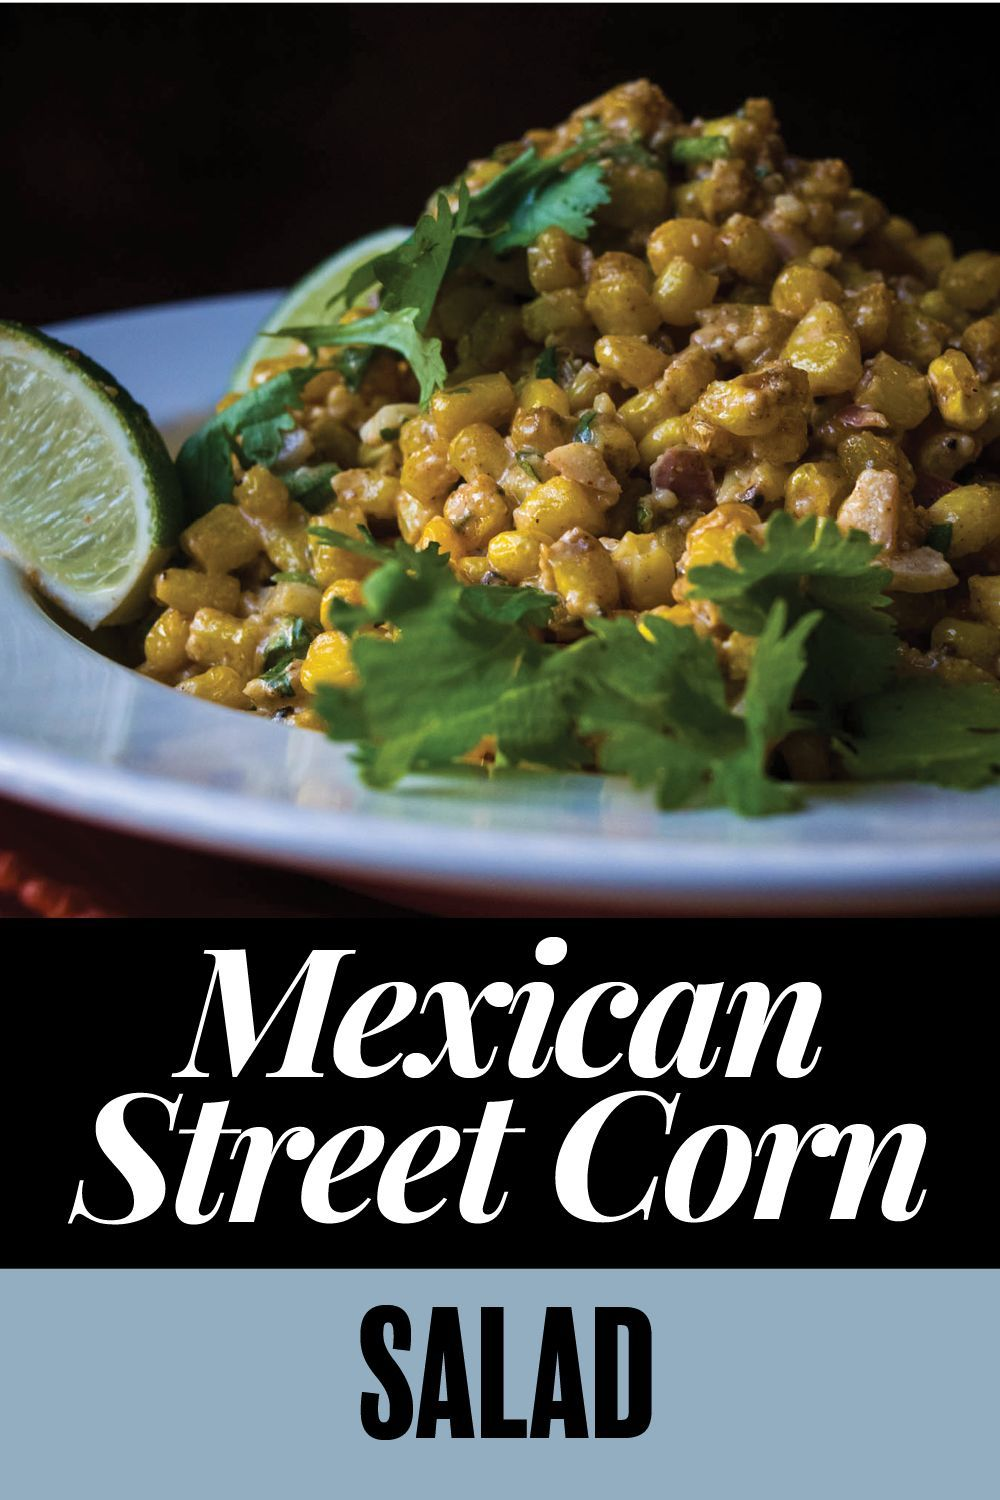 Mexican Street Corn Salad #mexicanstreetcorn This flavorful Mexican Street Corn Salad is a quick and easy play on classic Mexican grilled street corn (or Elote), with cheese, lime and chili powder. #mexicanstreetcorn